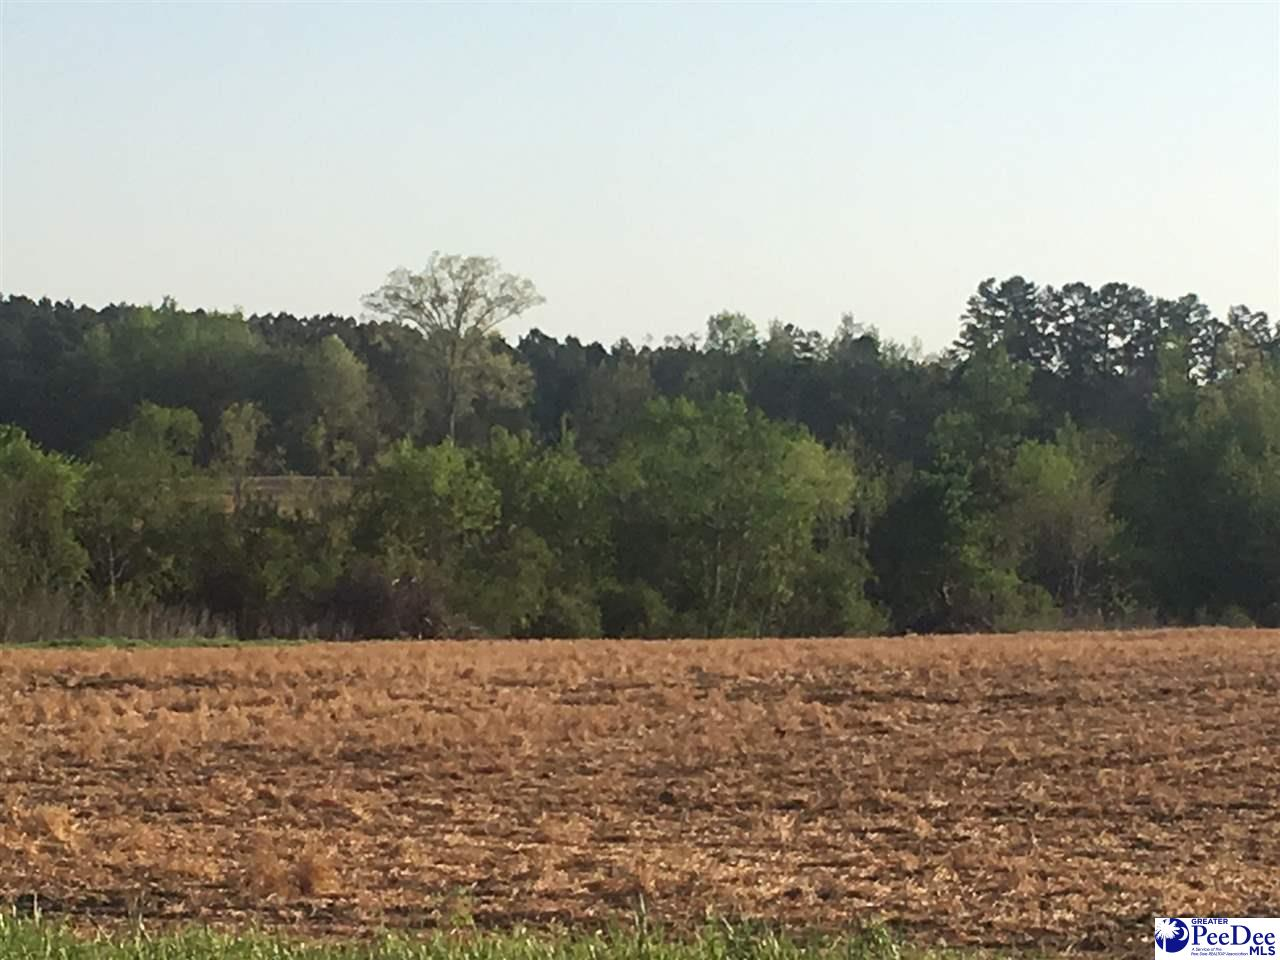 27.9 acre tract zoned as commercial. Located on the busy thruway of Hwy 601 just outside of Pageland town limit right across from Walmart DC. Also, only minutes from the NC line. Prime location to use as farmland or building your business.